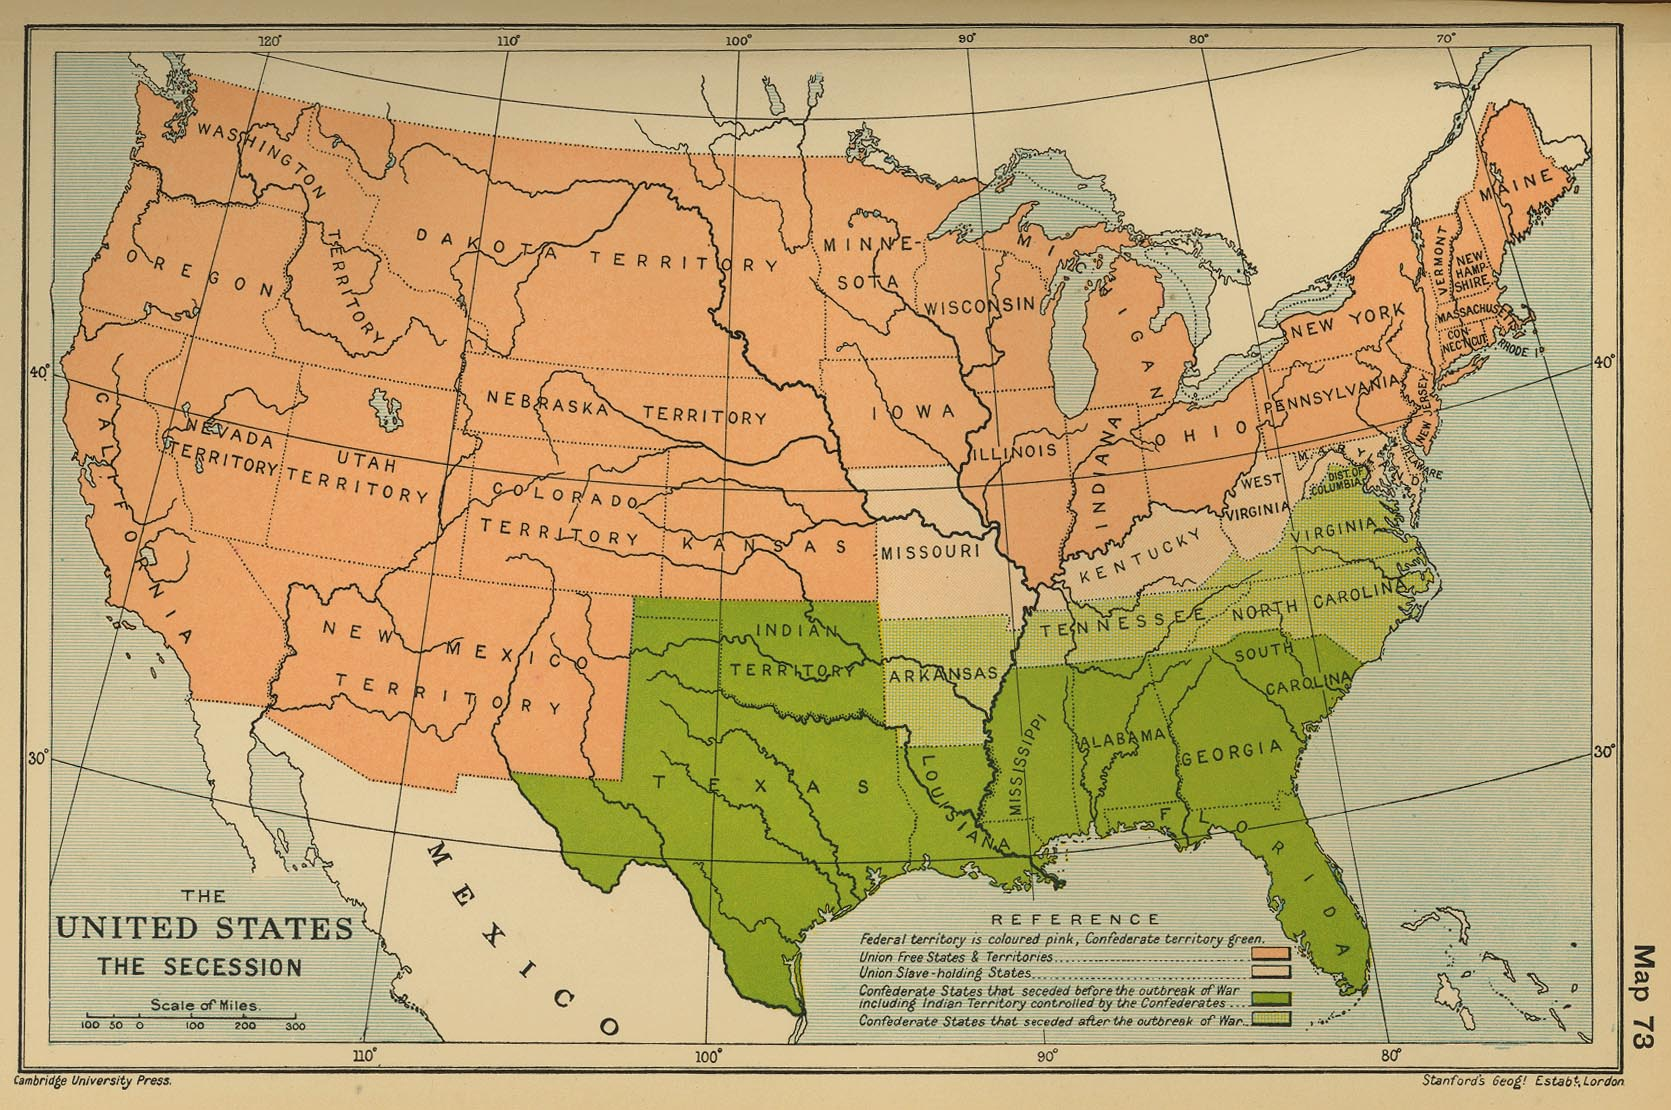 Map of the United States: The Secession